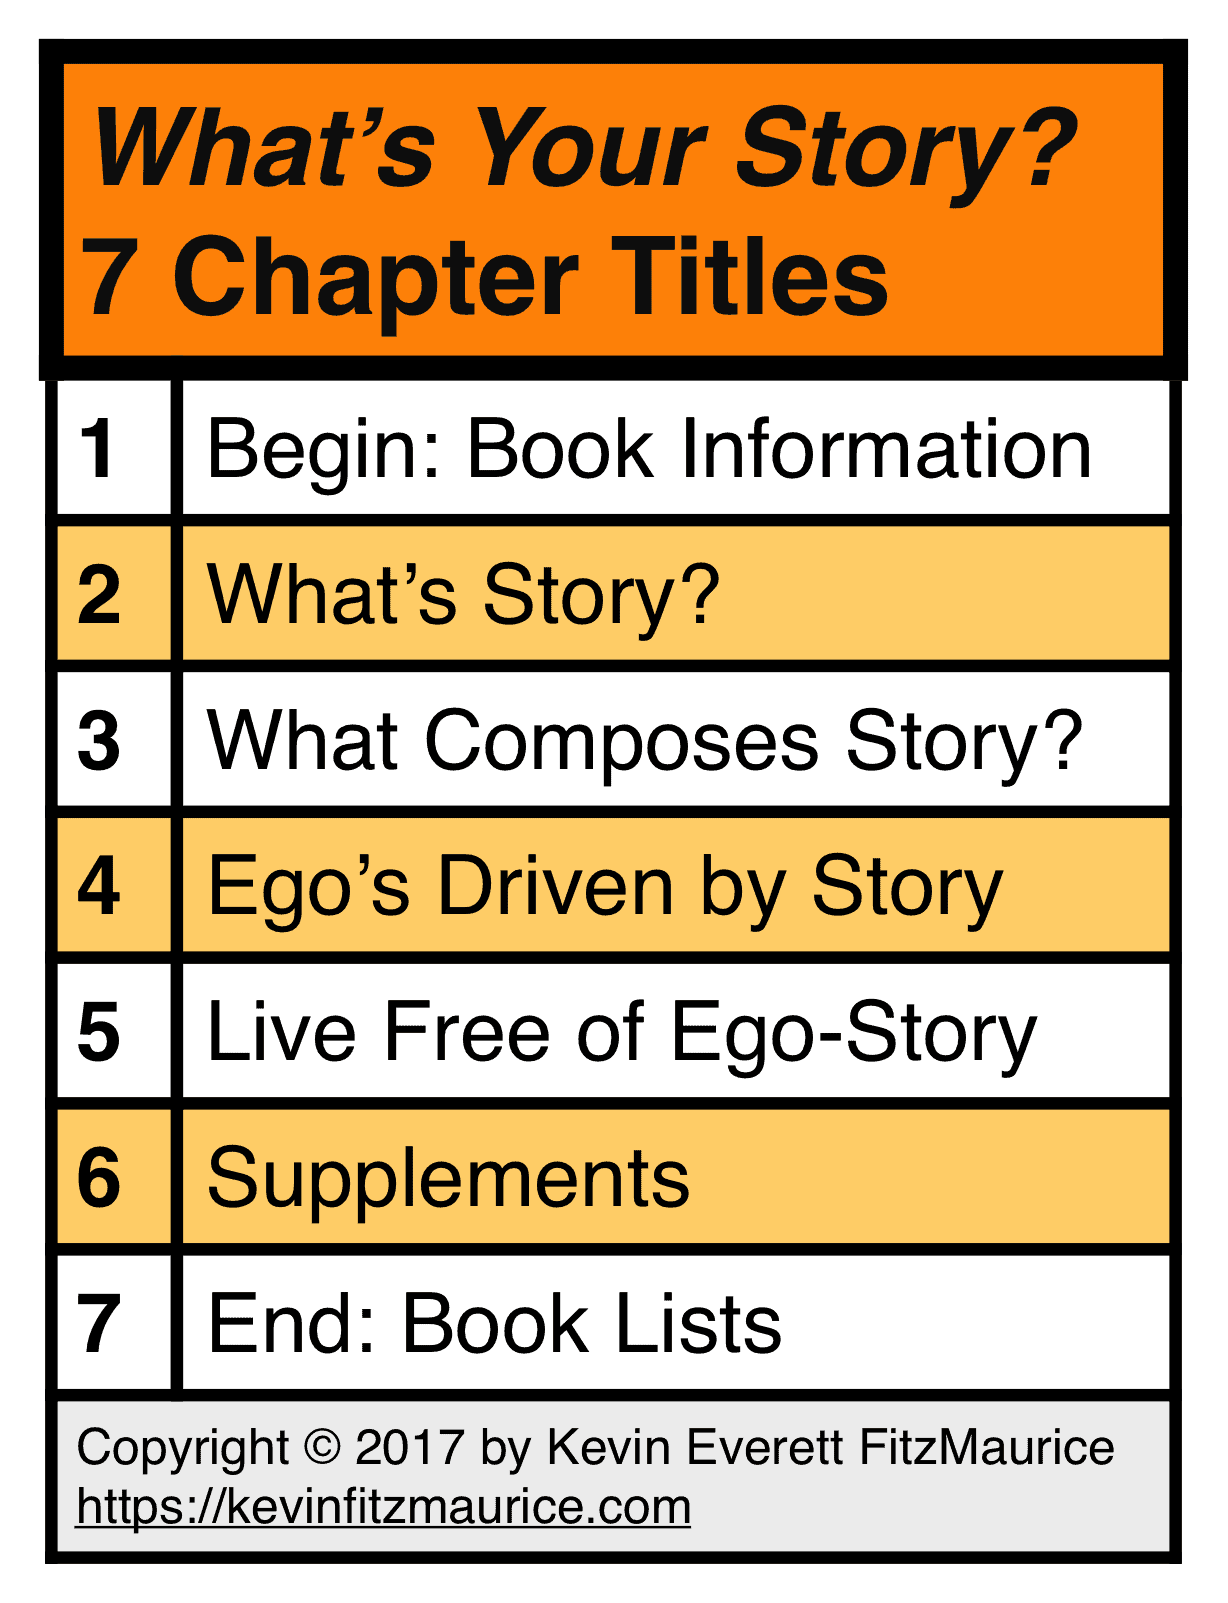 What's Your Story? 7 Chapter Titles